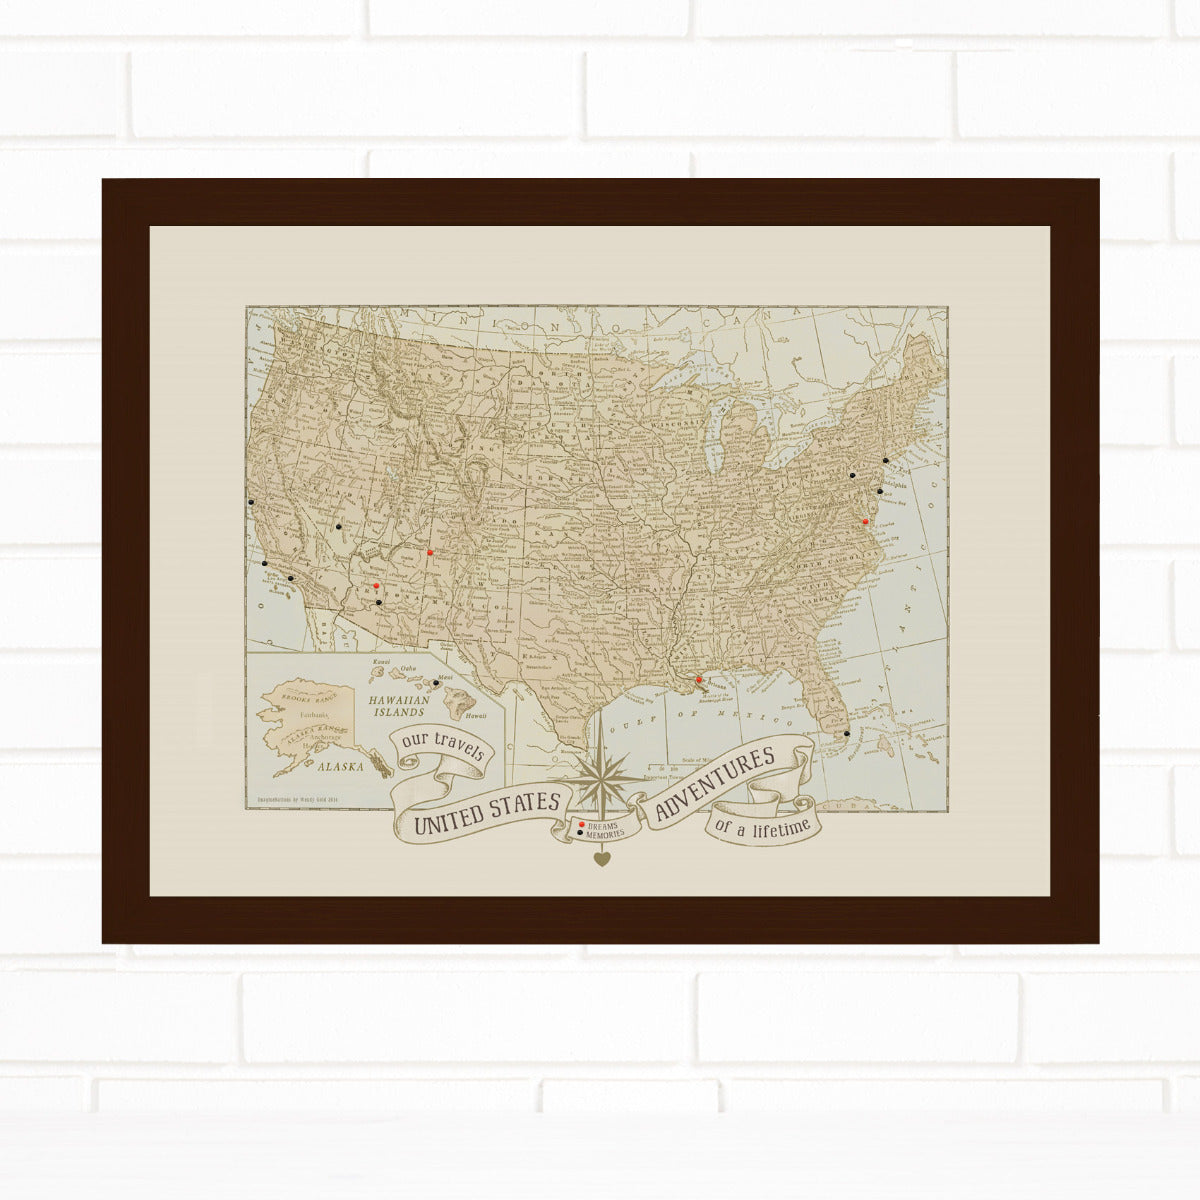 USA Push Pin Travel Map Dreams & Memories Quickship by Wendy Gold